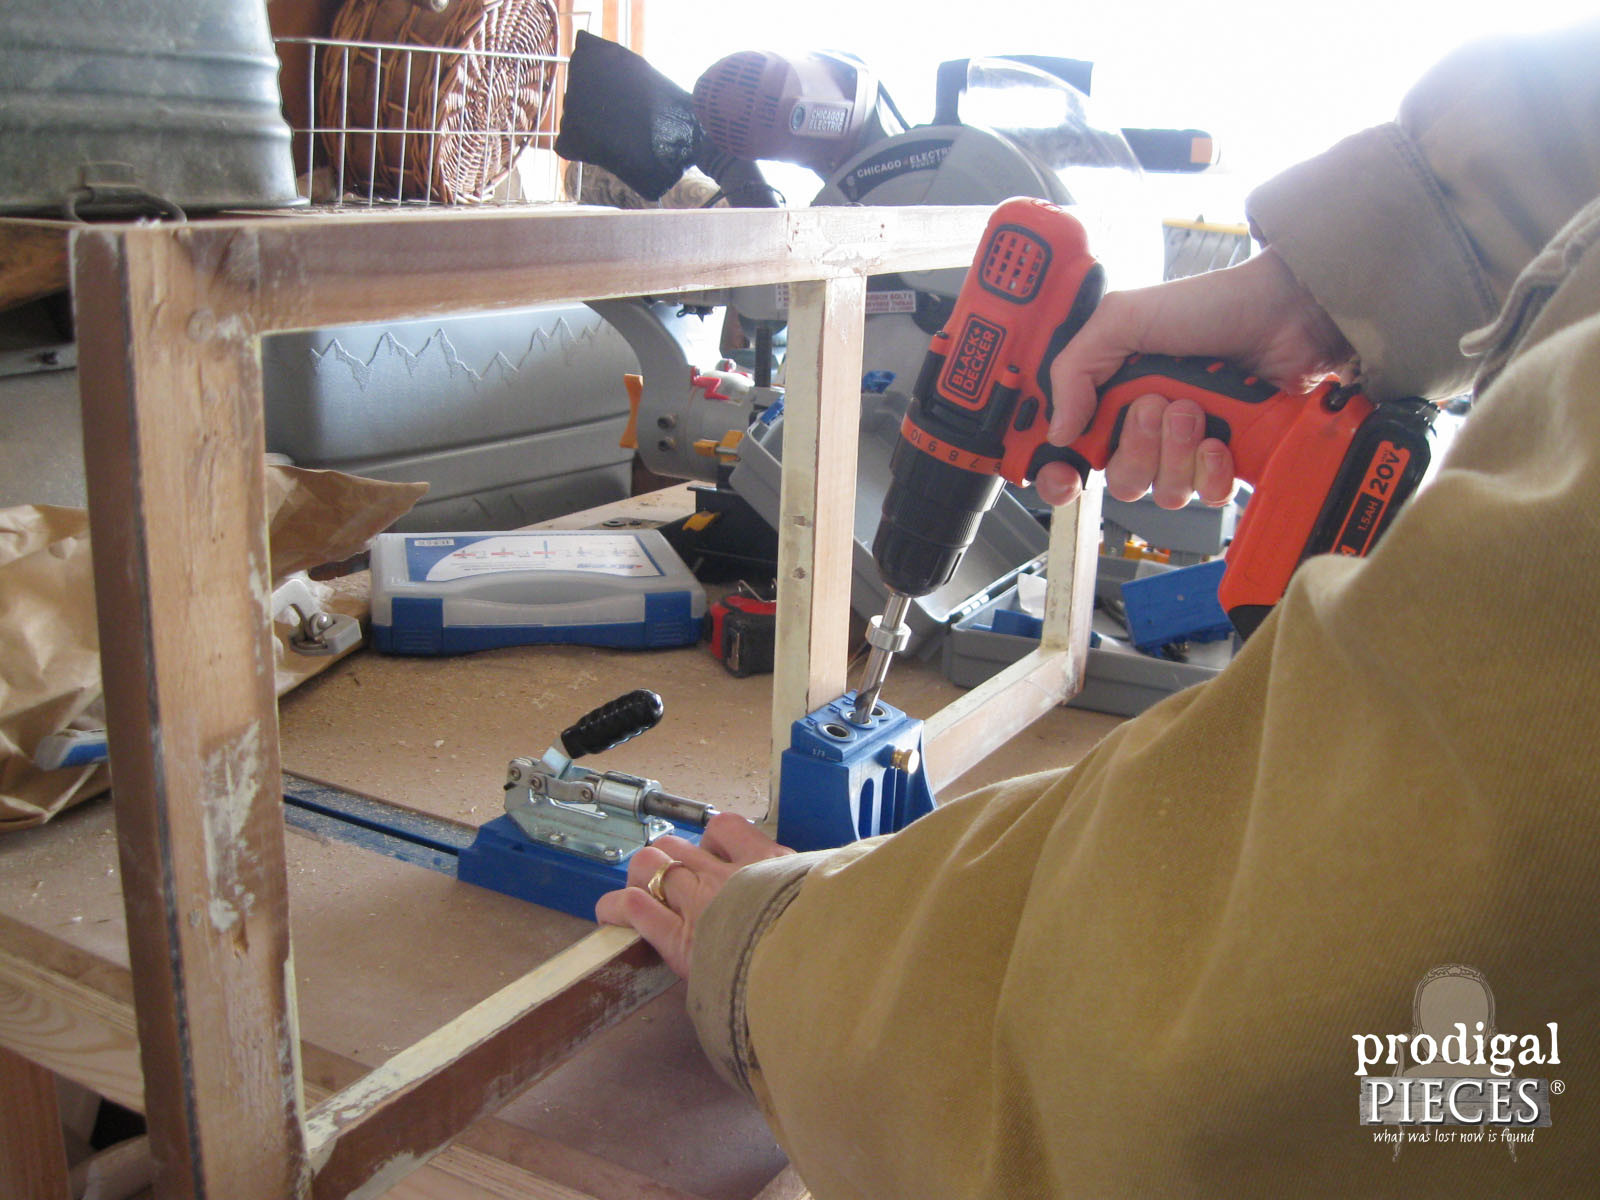 Creating Pocket Screw Holes with my Kreg Jig | Prodigal Pieces | www.prodigalpieces.com